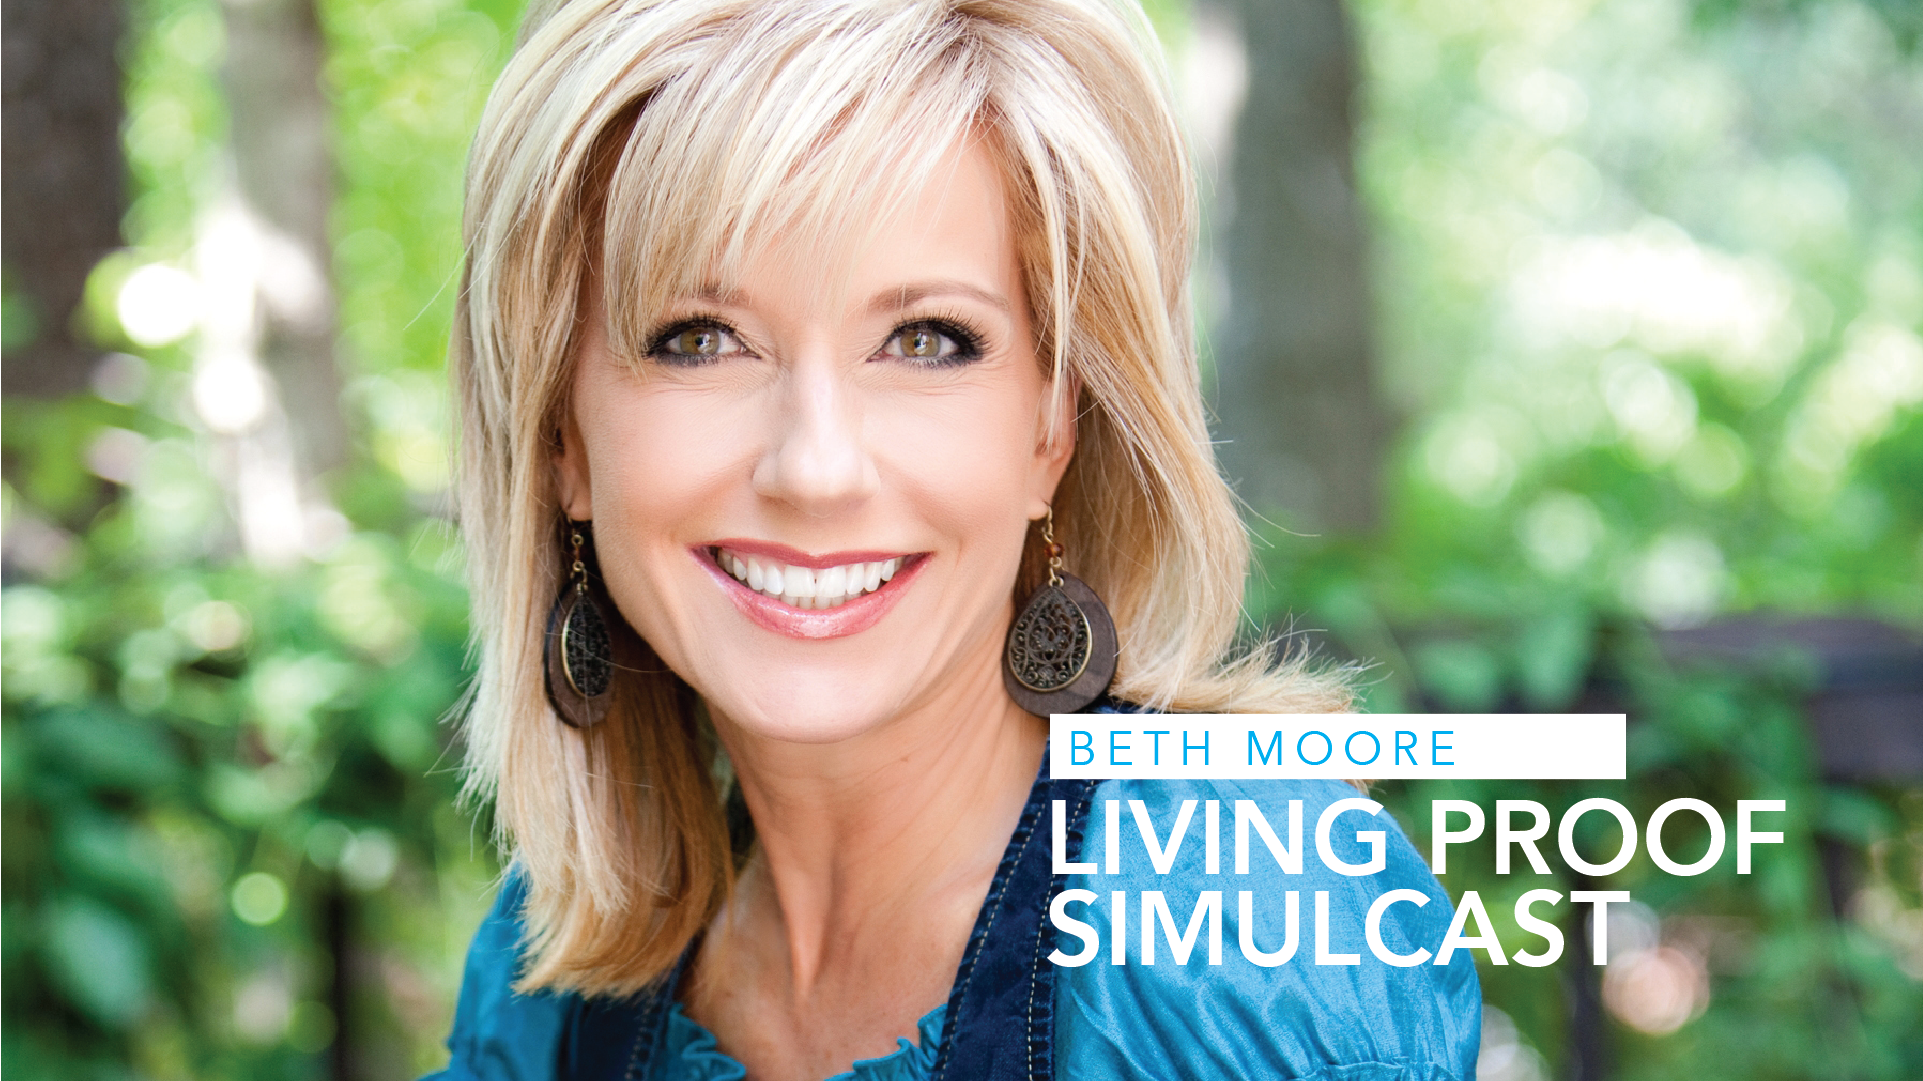 Beth moore event image 04